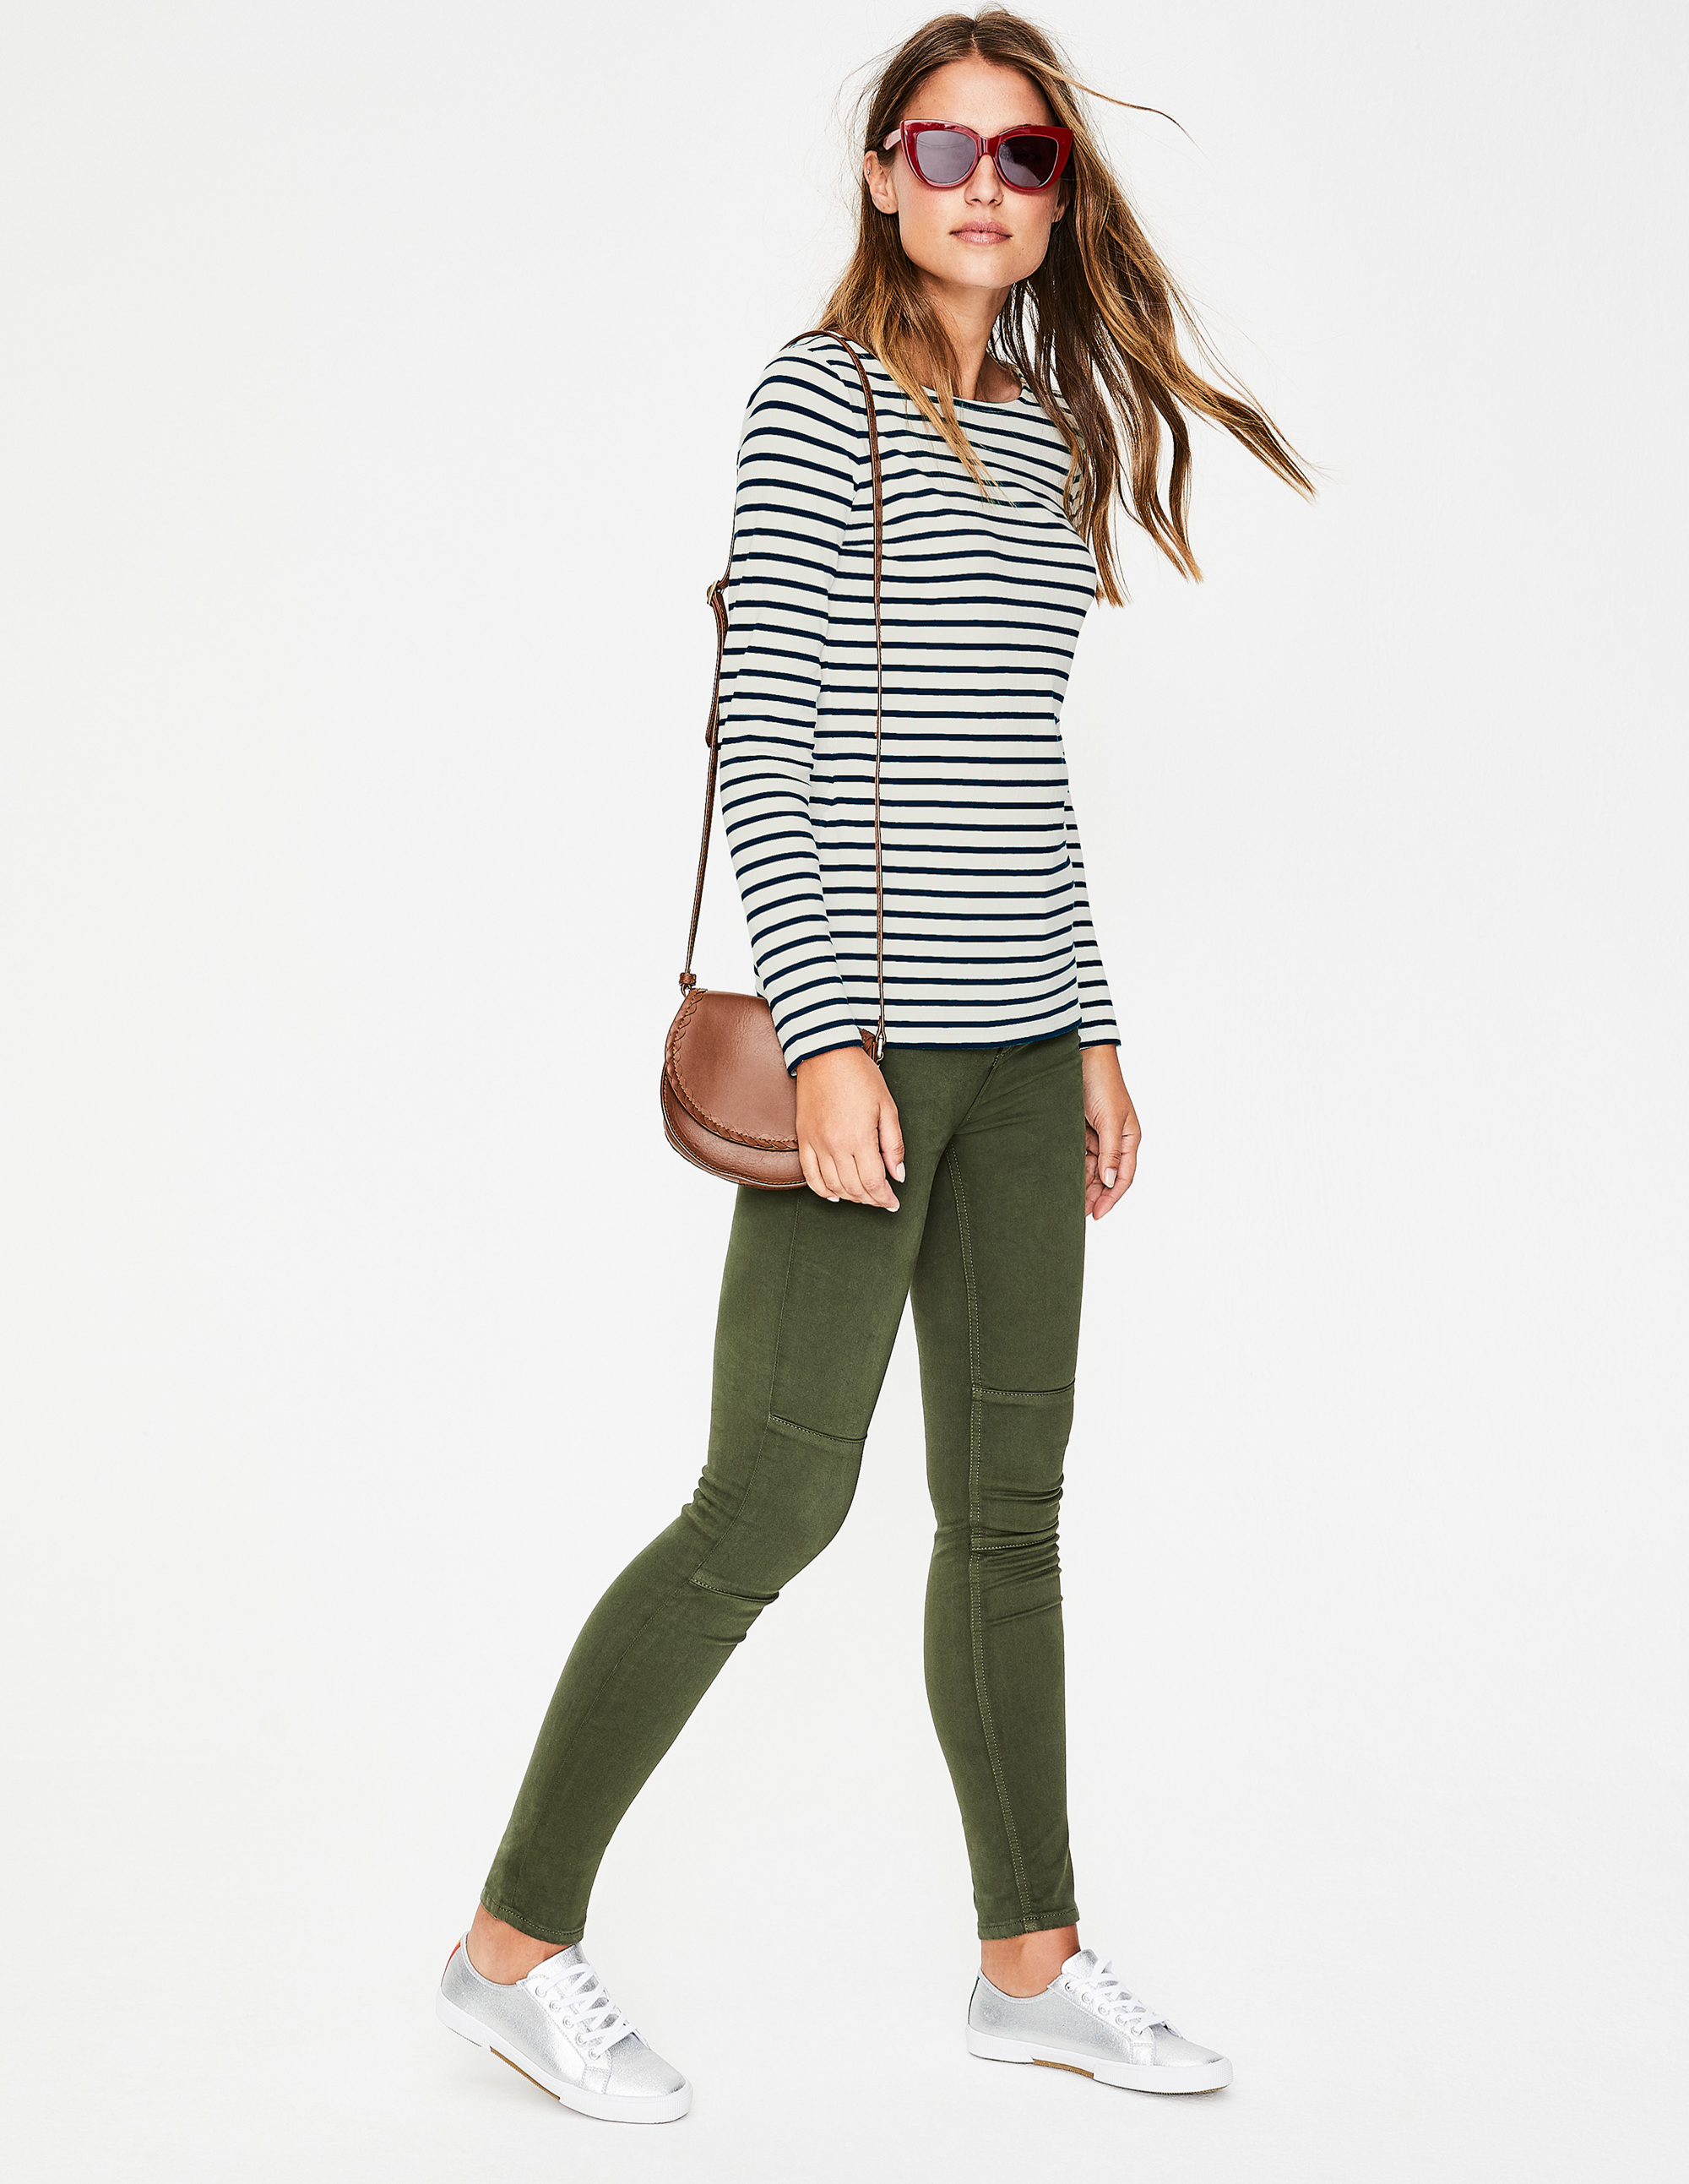 My favorite Breton tee. Available in a zillion color combos.